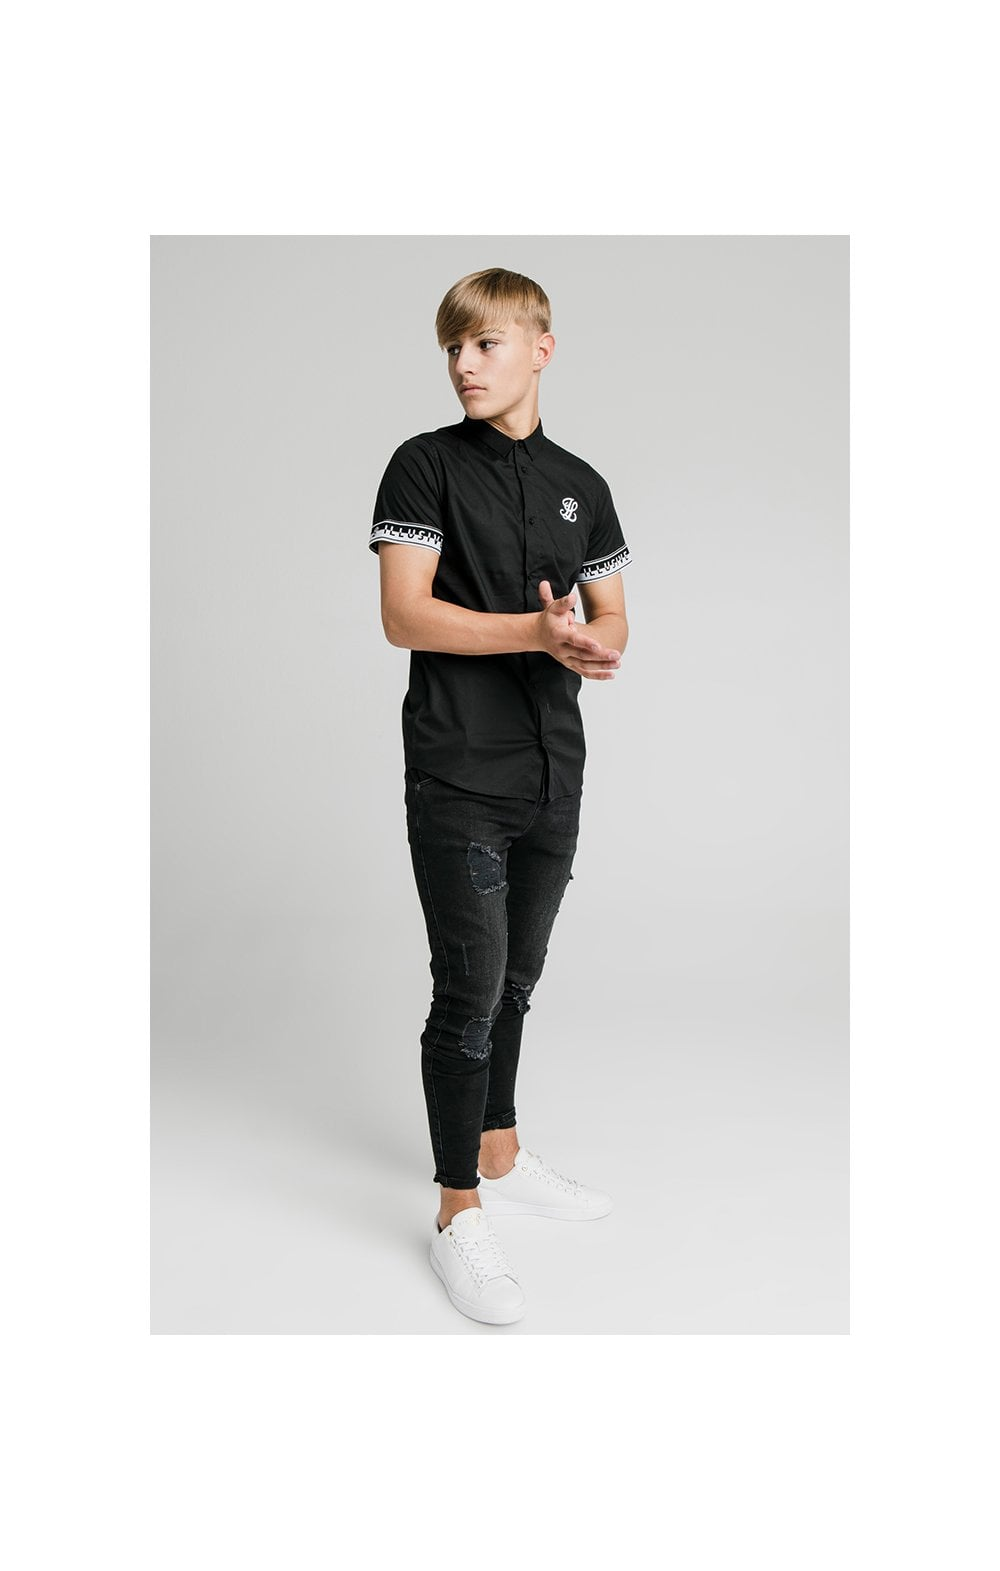 Illusive London Contrast Tape S/S Shirt - Black (2)